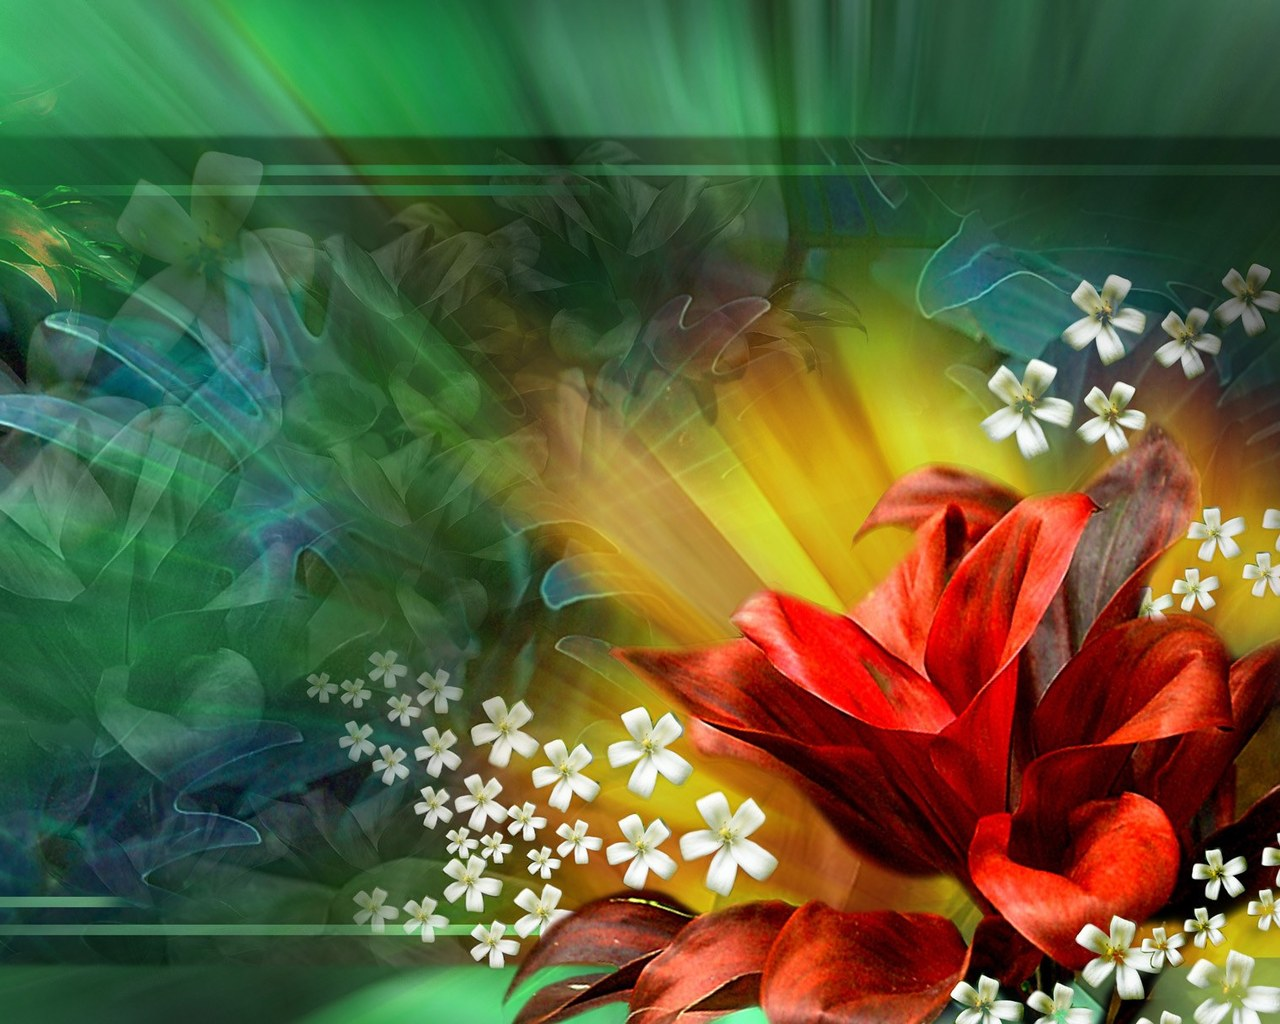 Cool Wallpapers: 3d Animated Wallpapers For Mac